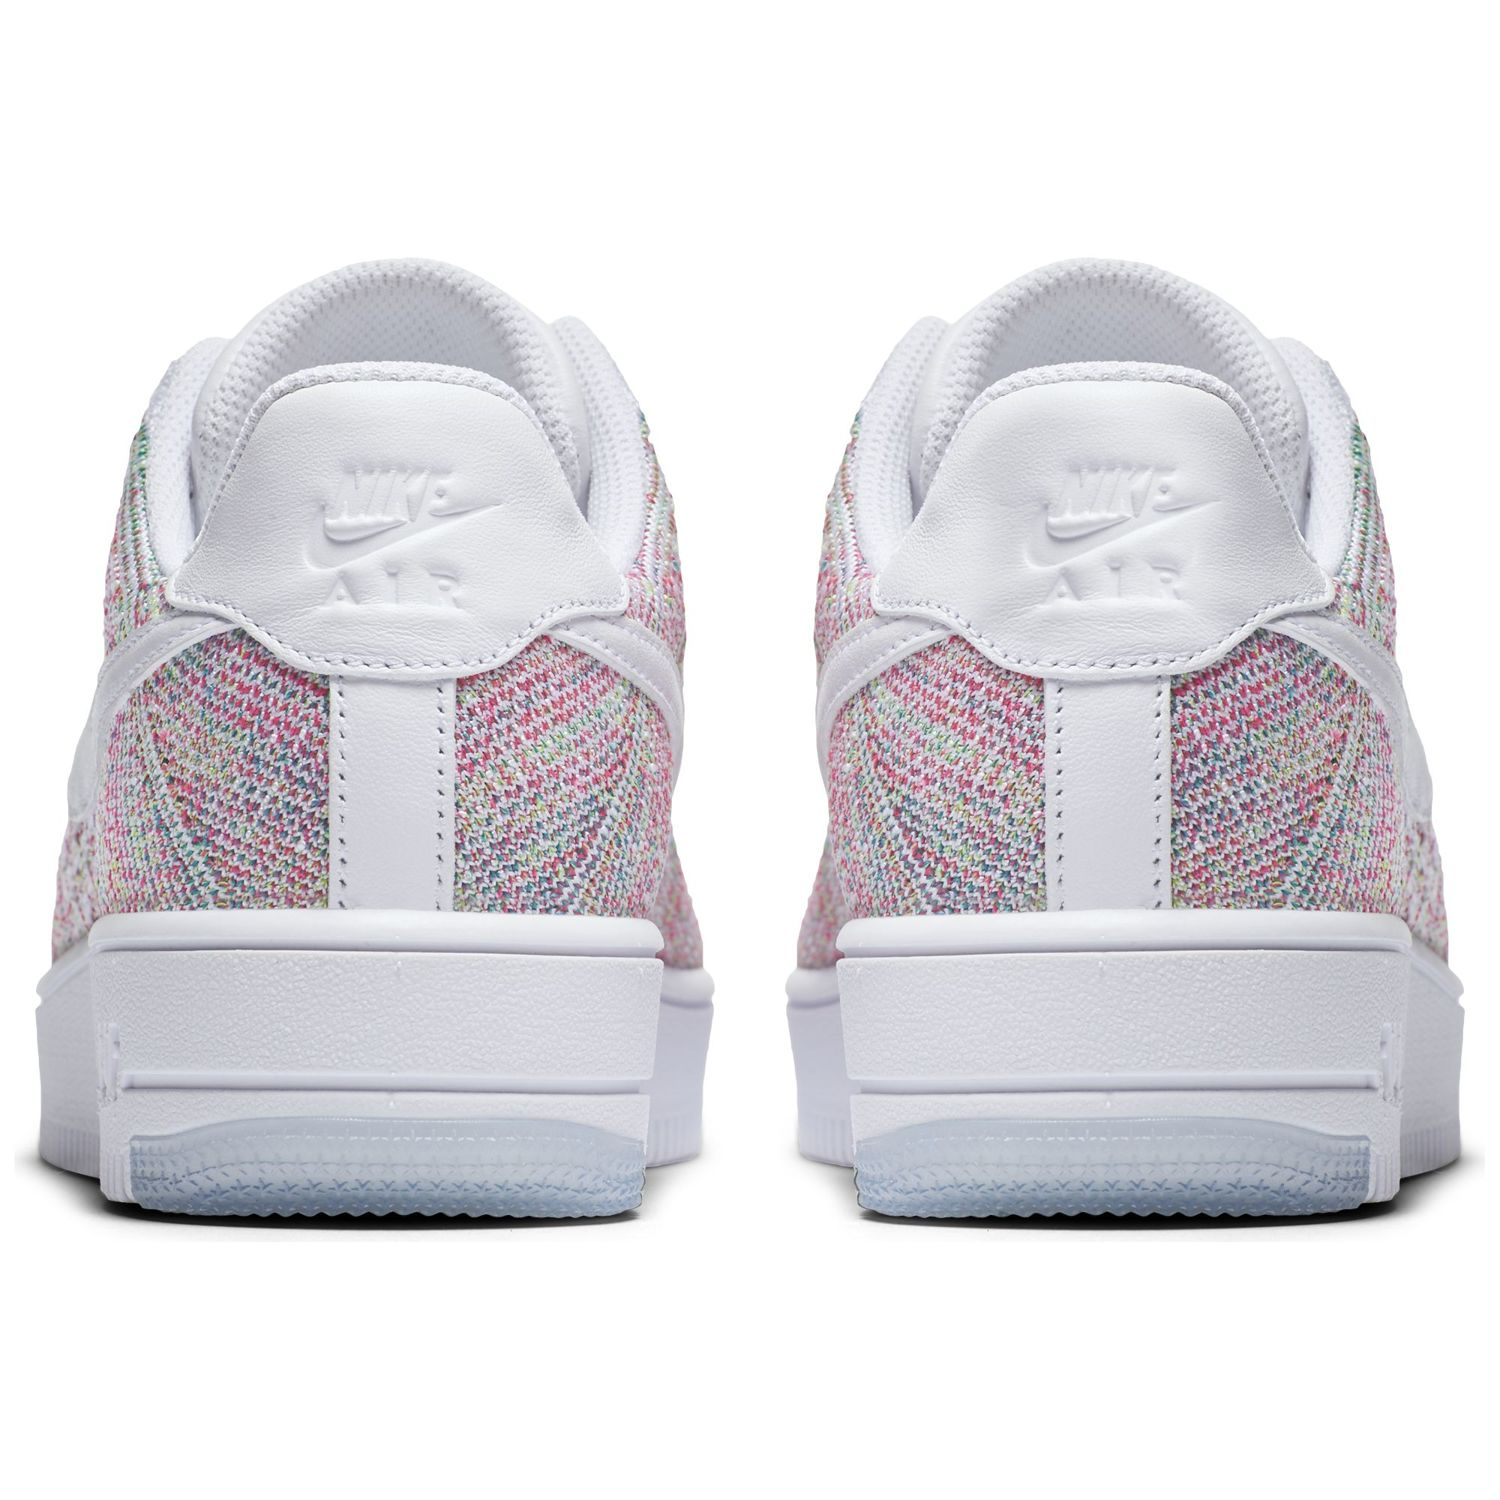 Air Force 1 Flyknit Low Radiant Emerald 820256 102